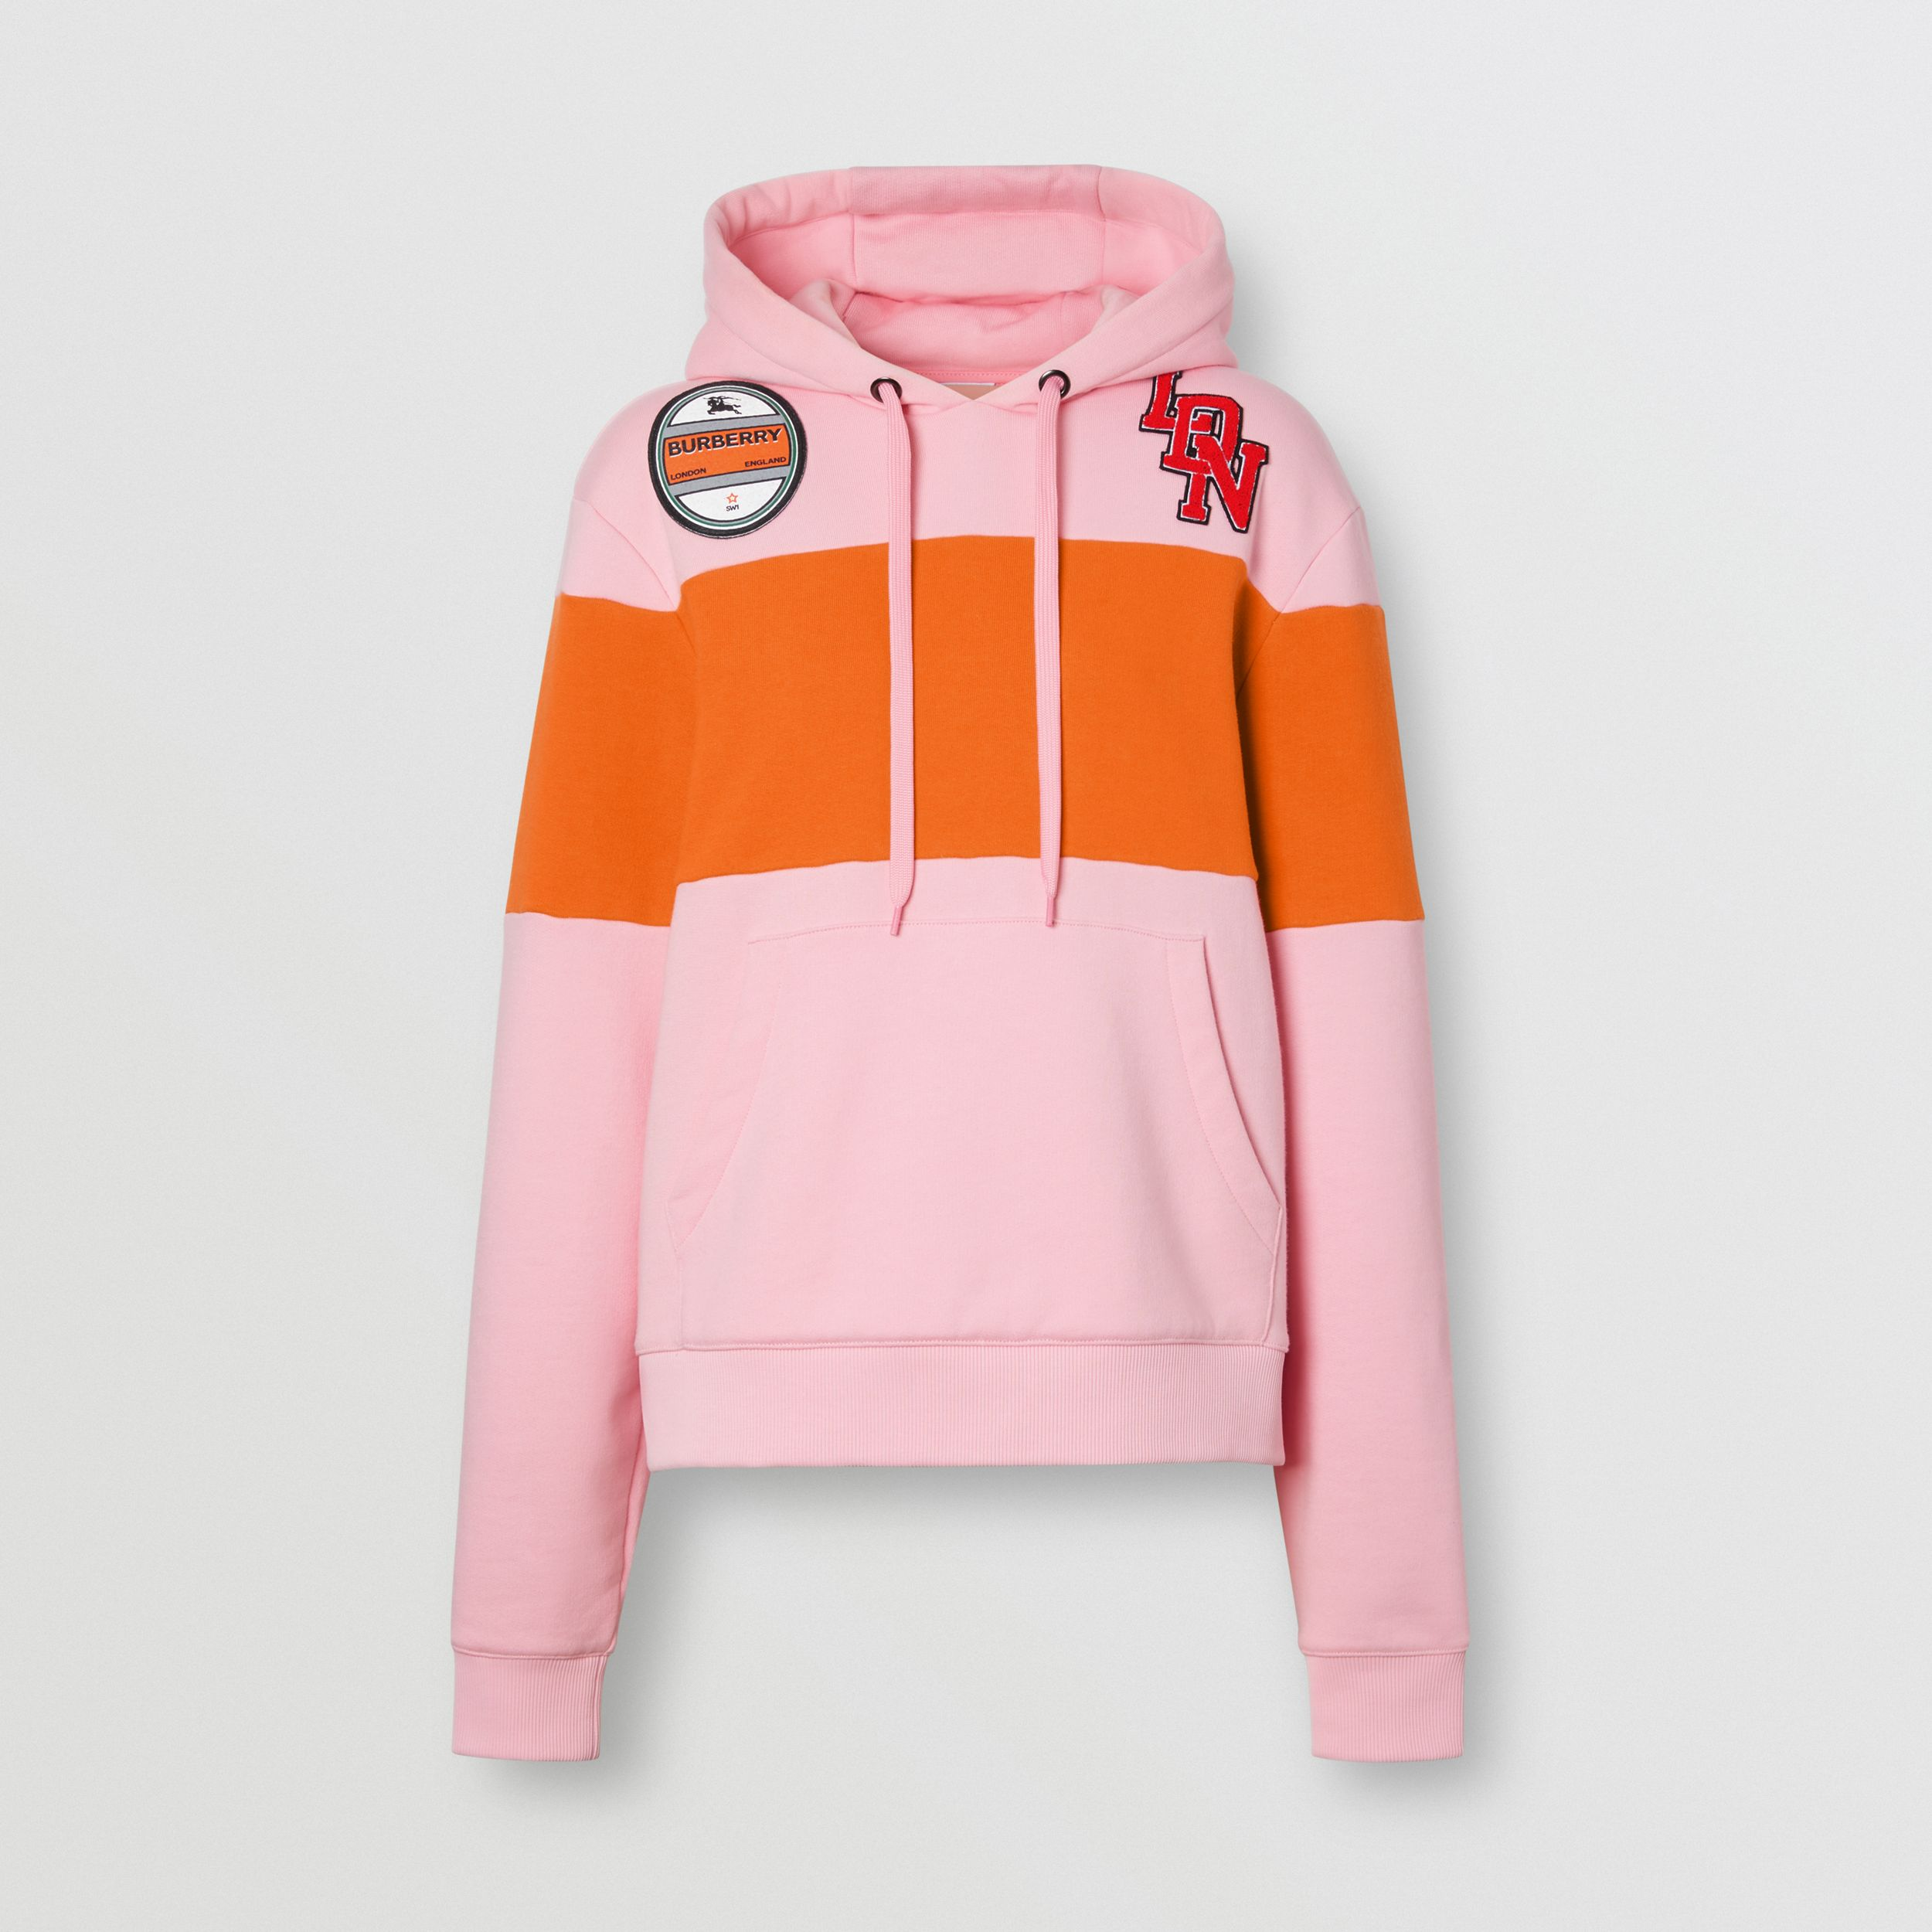 Logo Graphic Panelled Cotton Oversized Hoodie in Candy Pink - Women | Burberry - 4